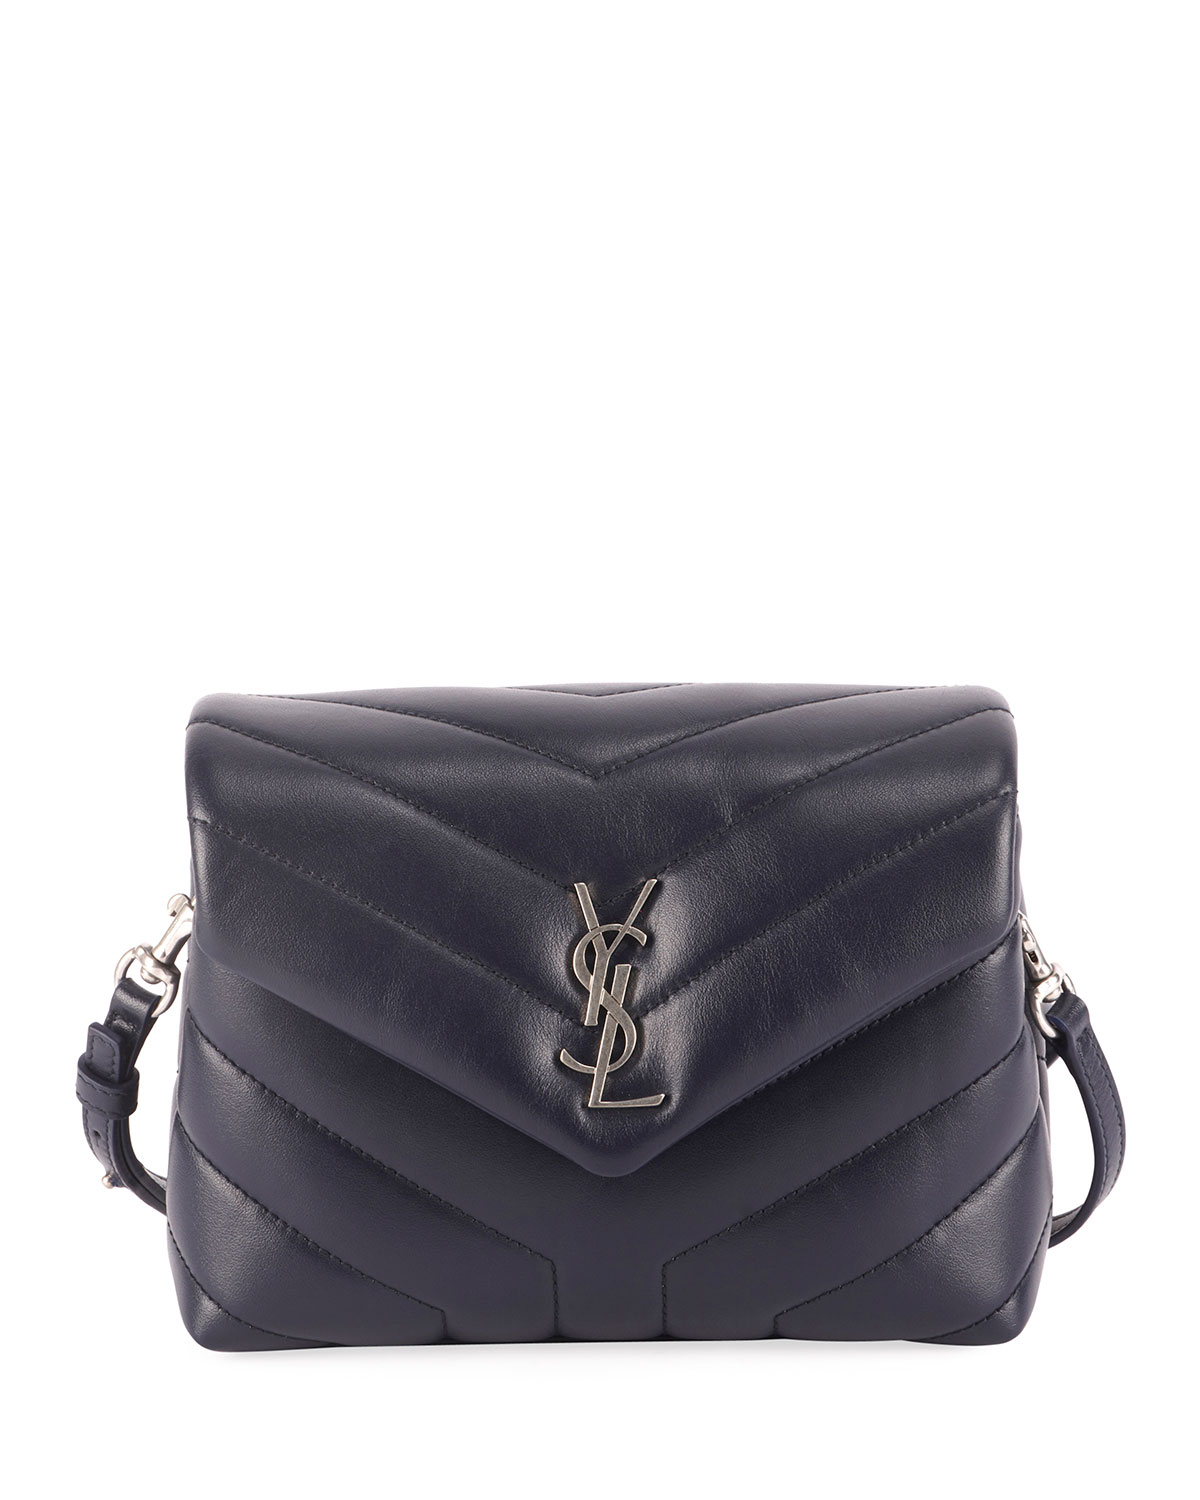 Loulou Monogram Ysl Mini V Flap Calf Leather Crossbody Bag Nickel Oxide Hardware